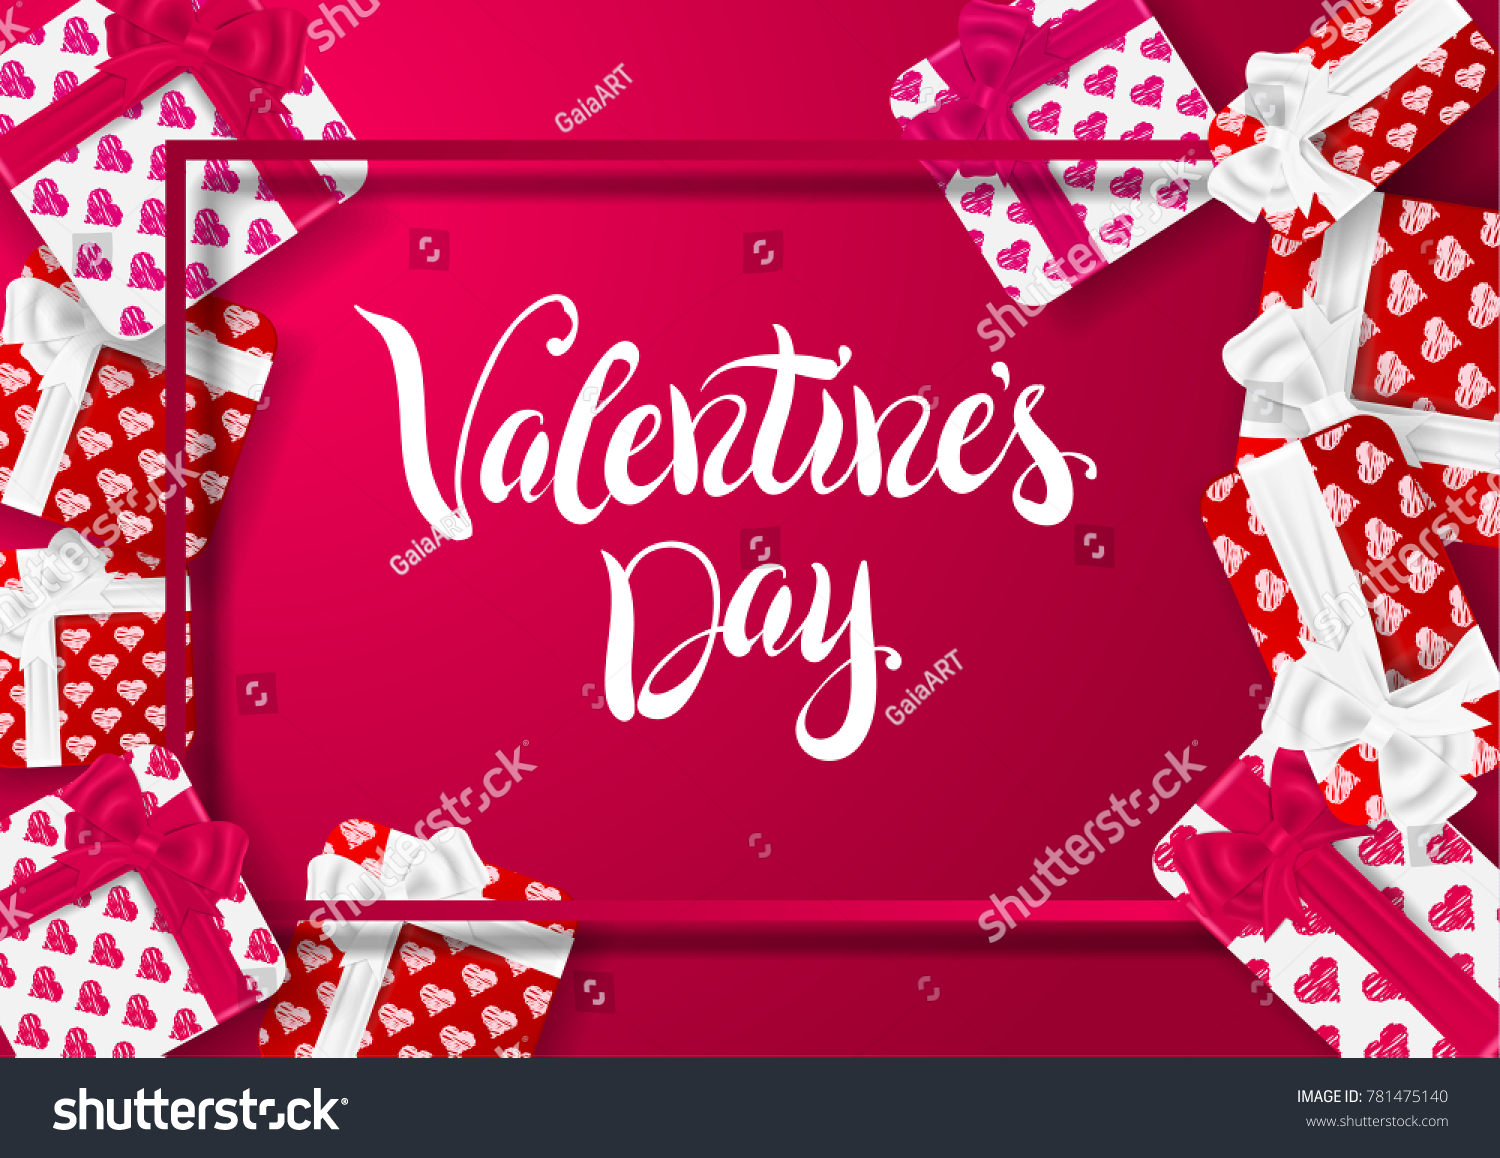 Happy valentines day design greeting card stock vector 781475140 happy valentines day design for greeting card can be used on banners or web kristyandbryce Choice Image